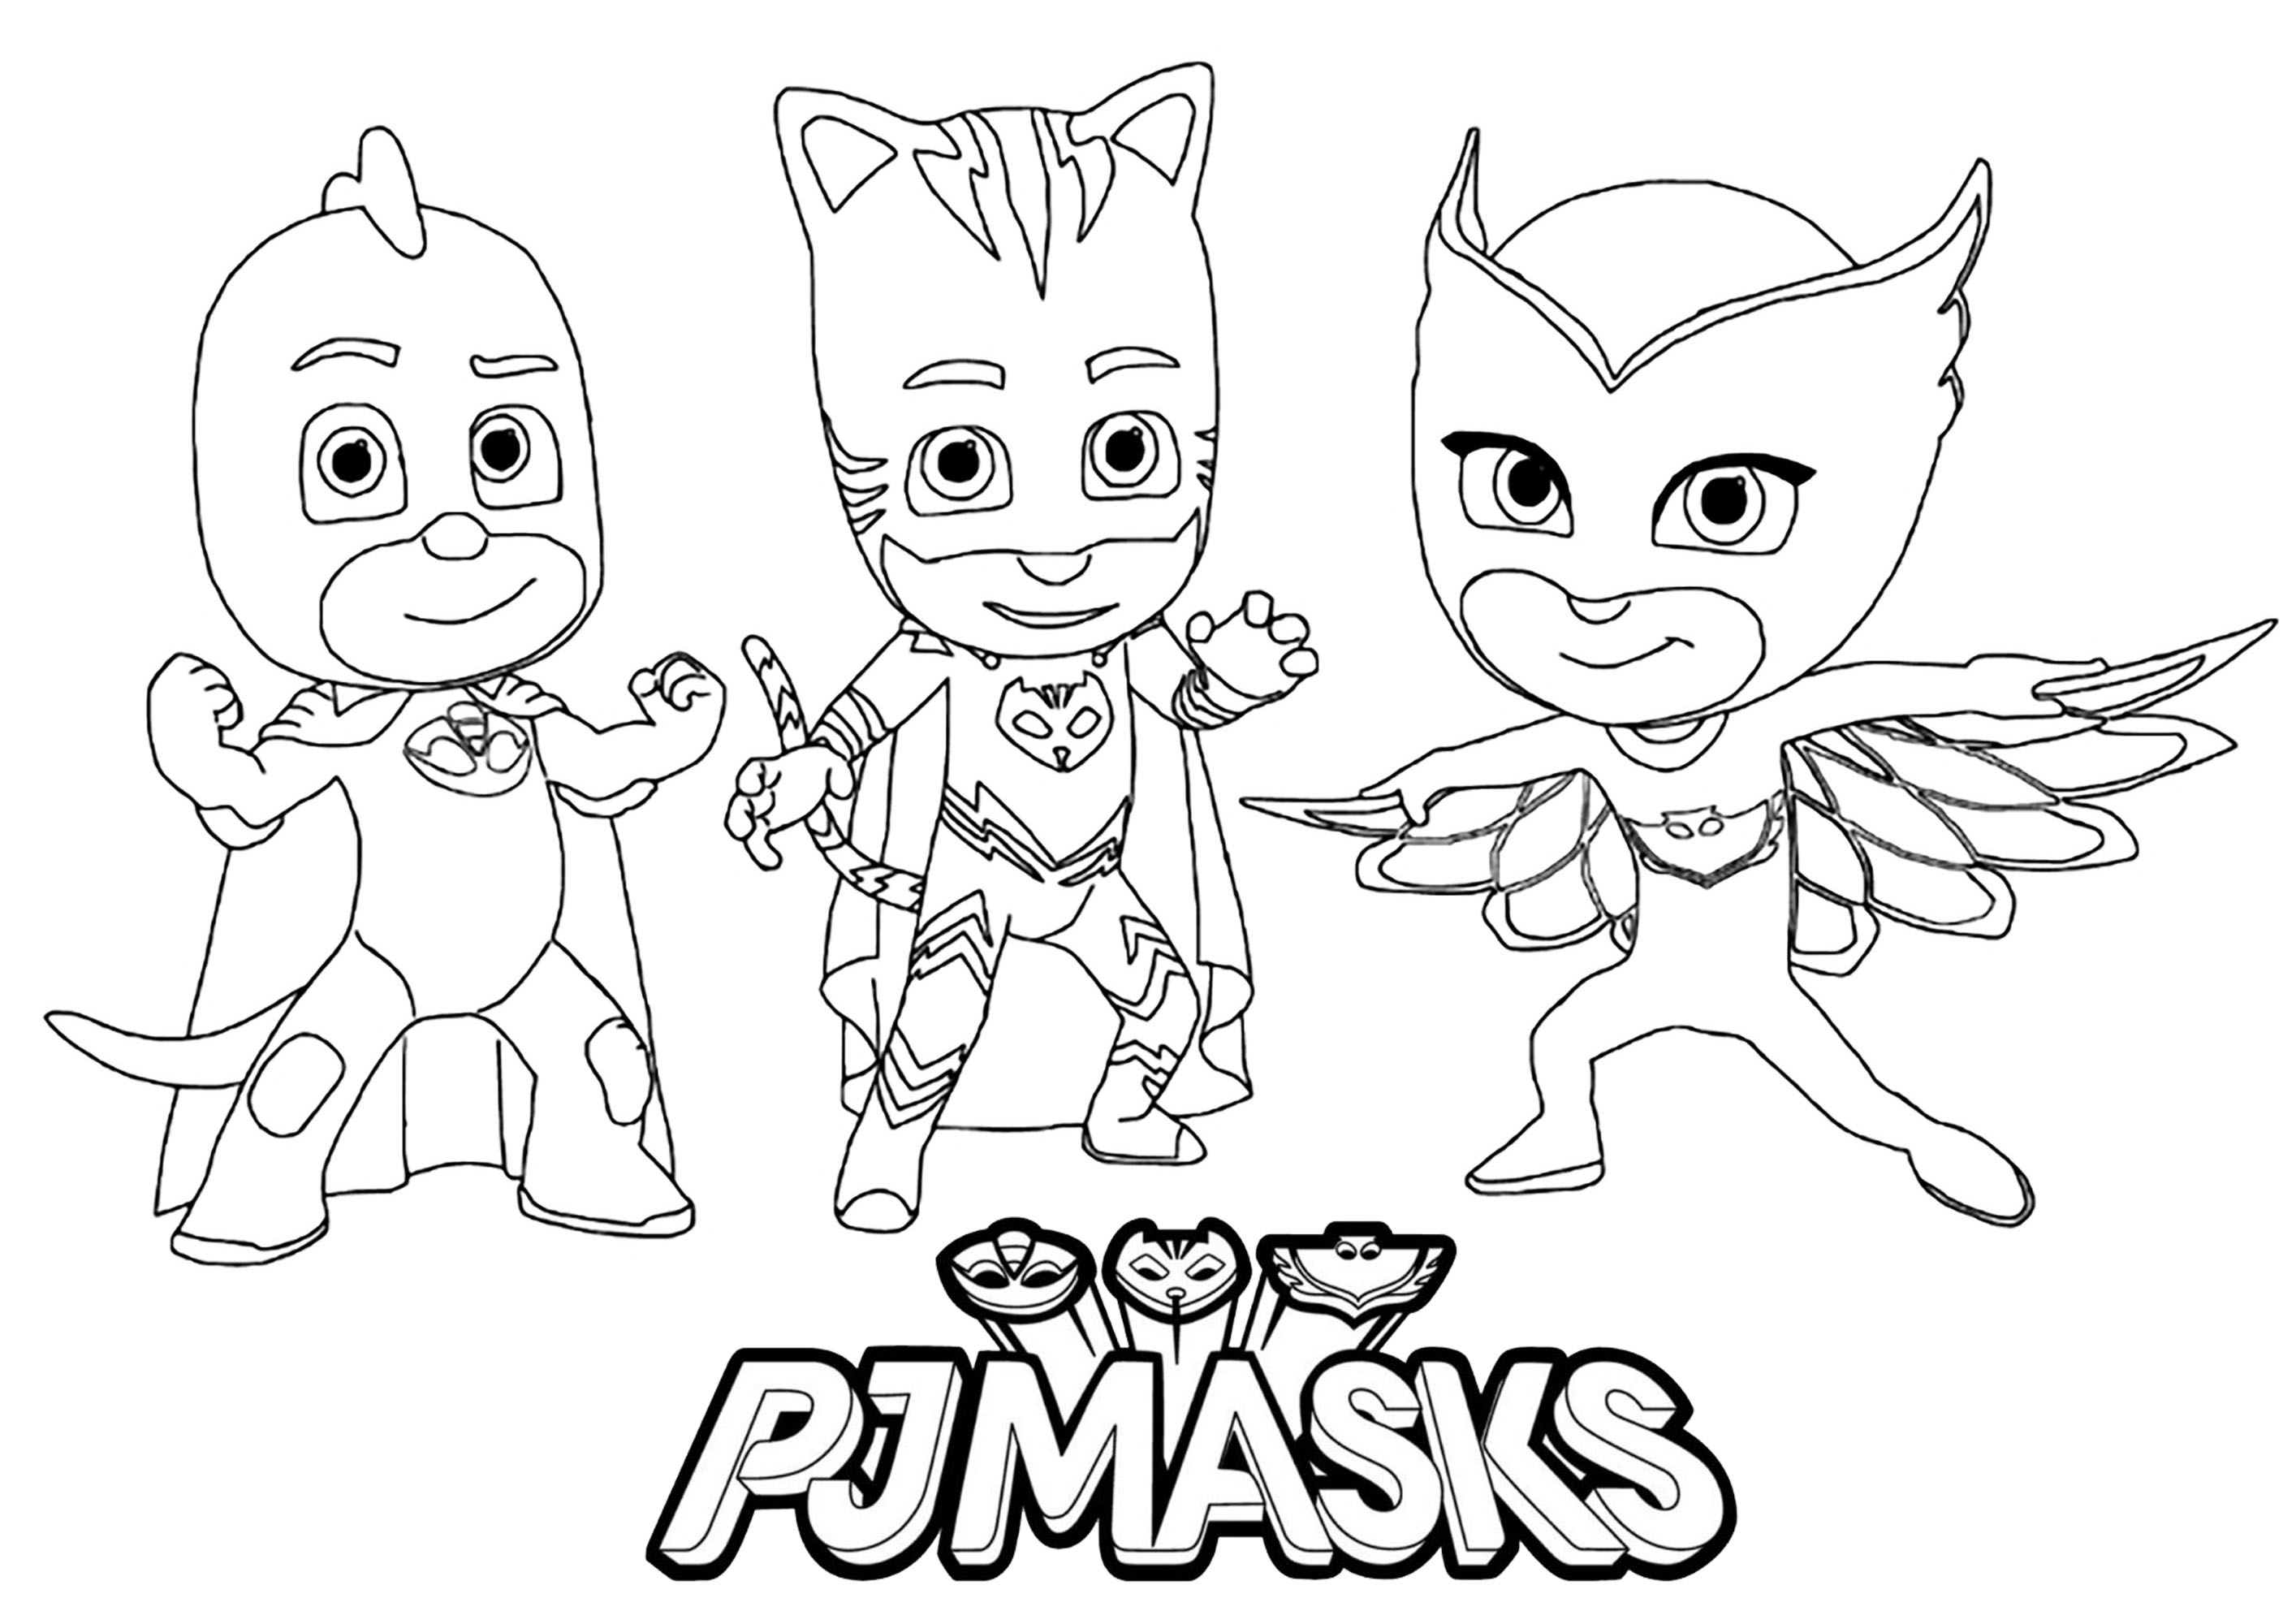 Free PJ Masks coloring page to download, for children